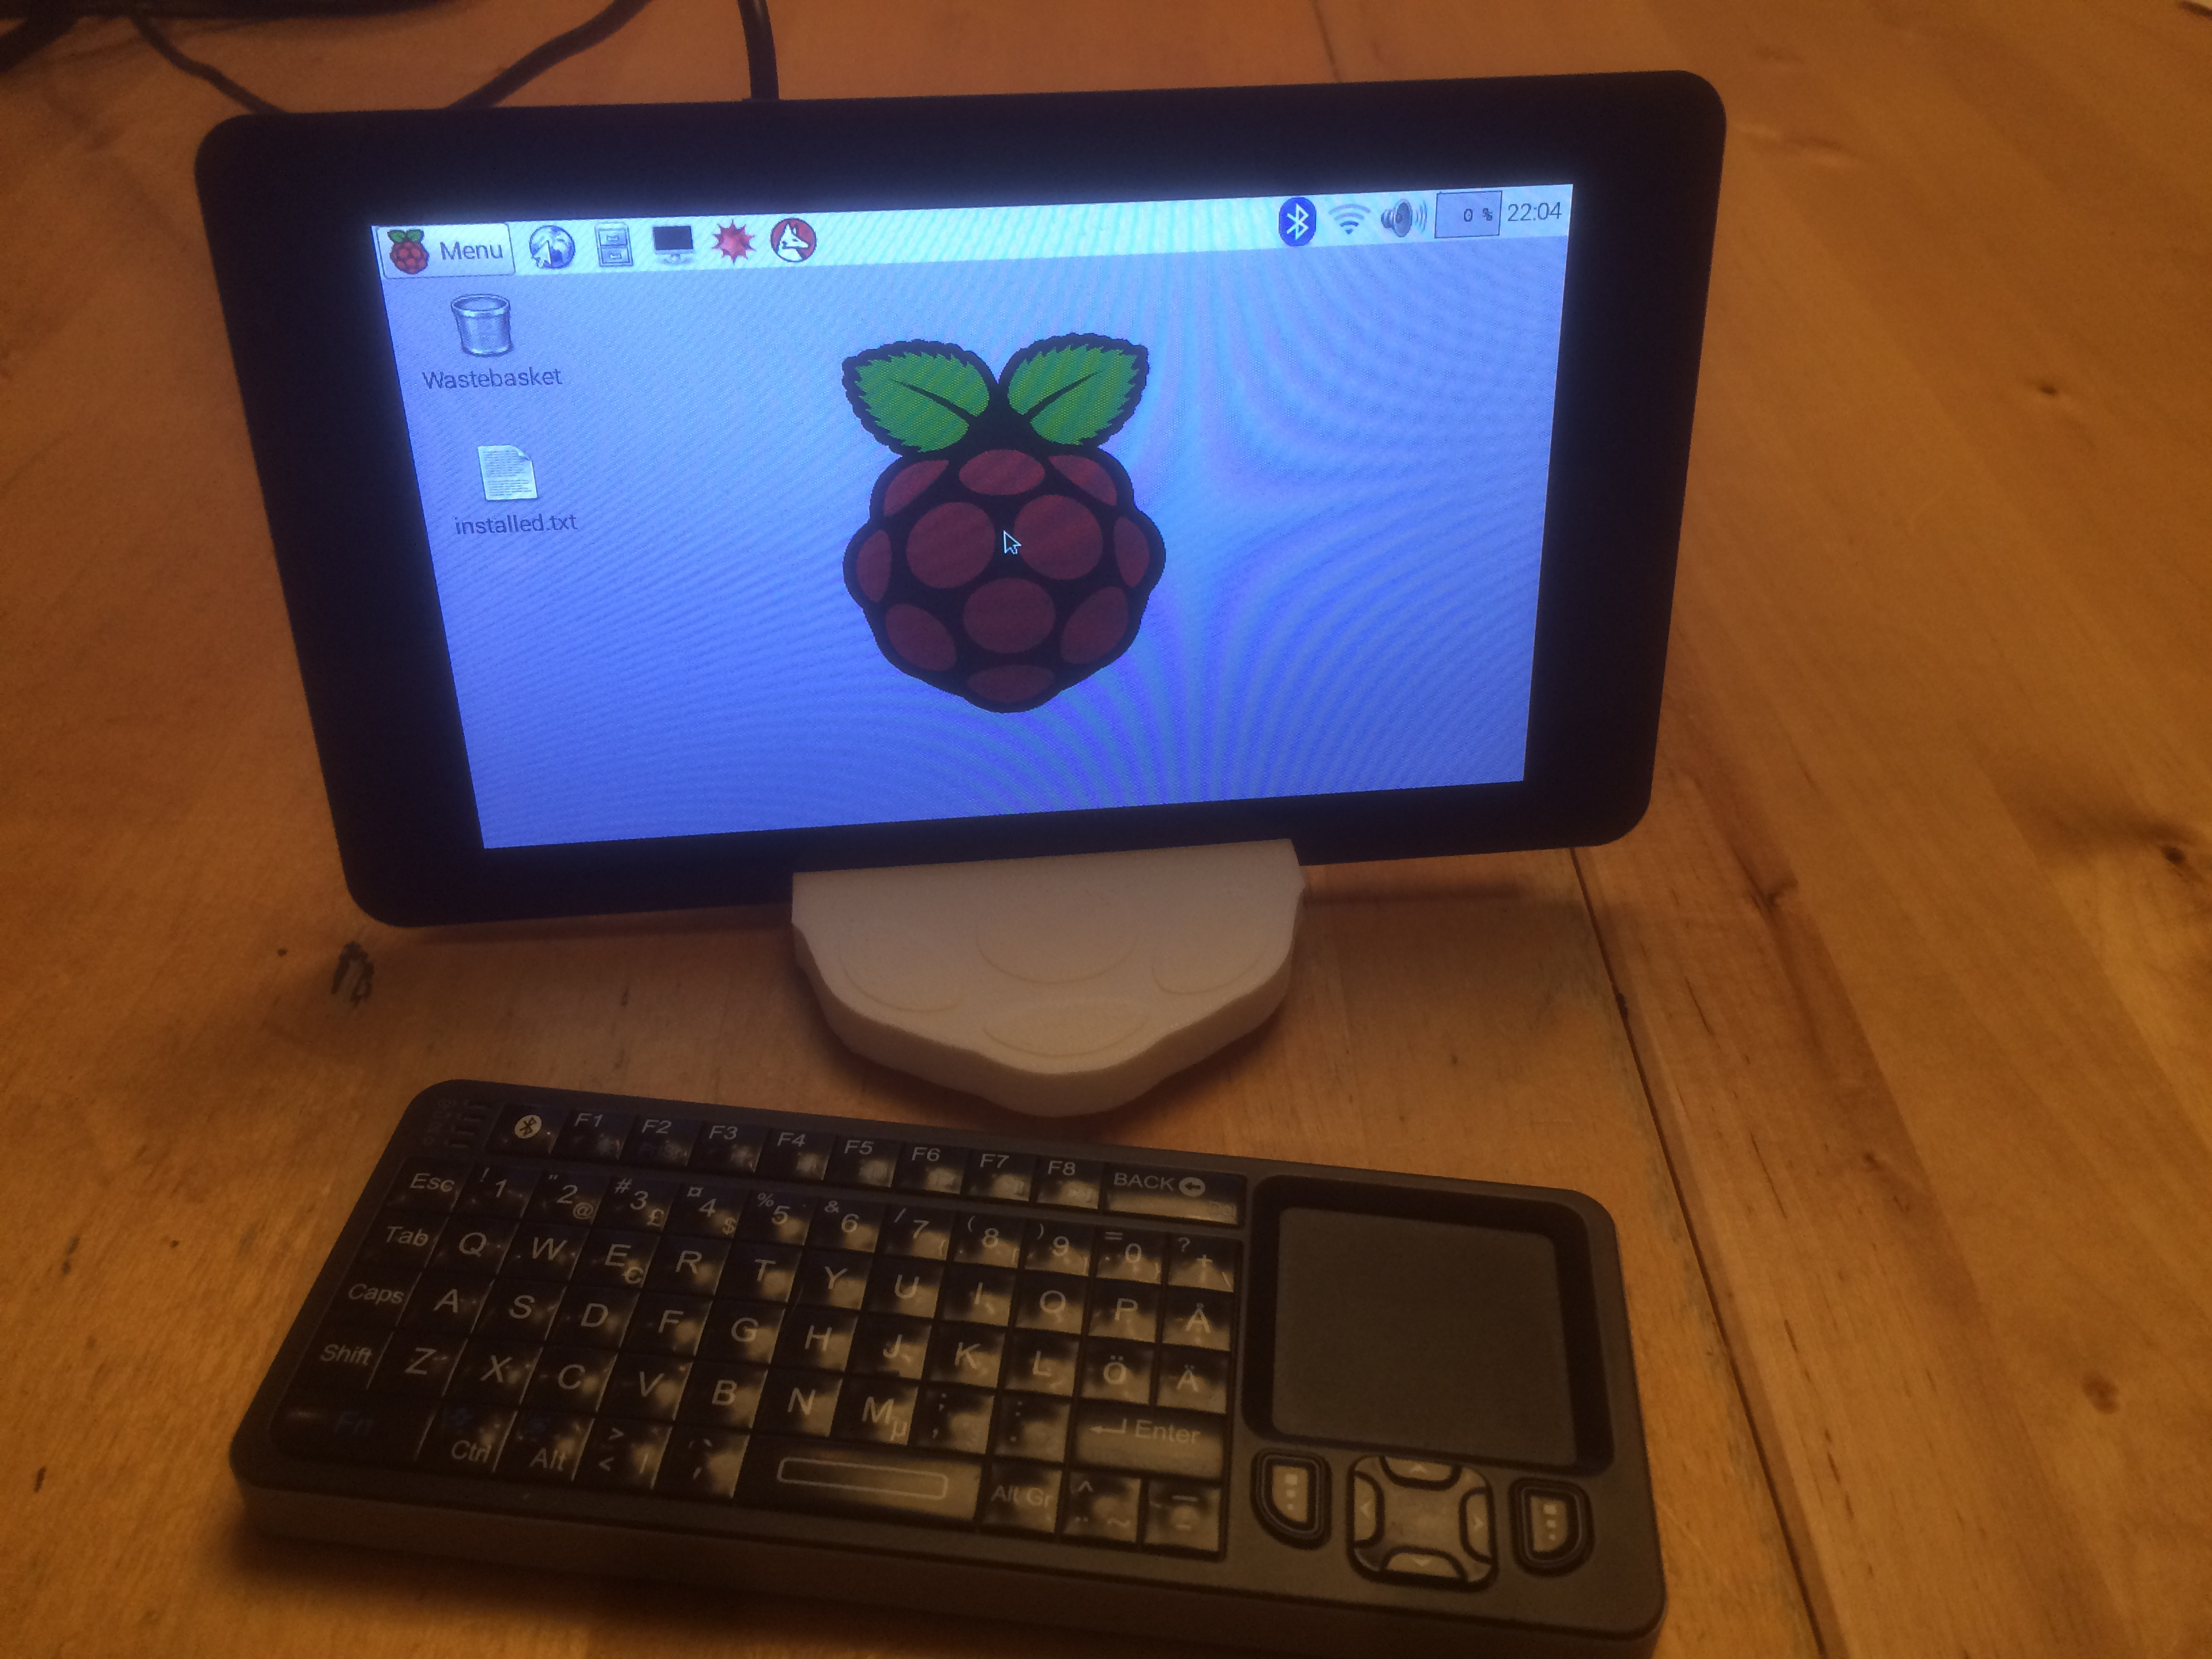 Using MQTT to send the IP address from a Raspberry PI